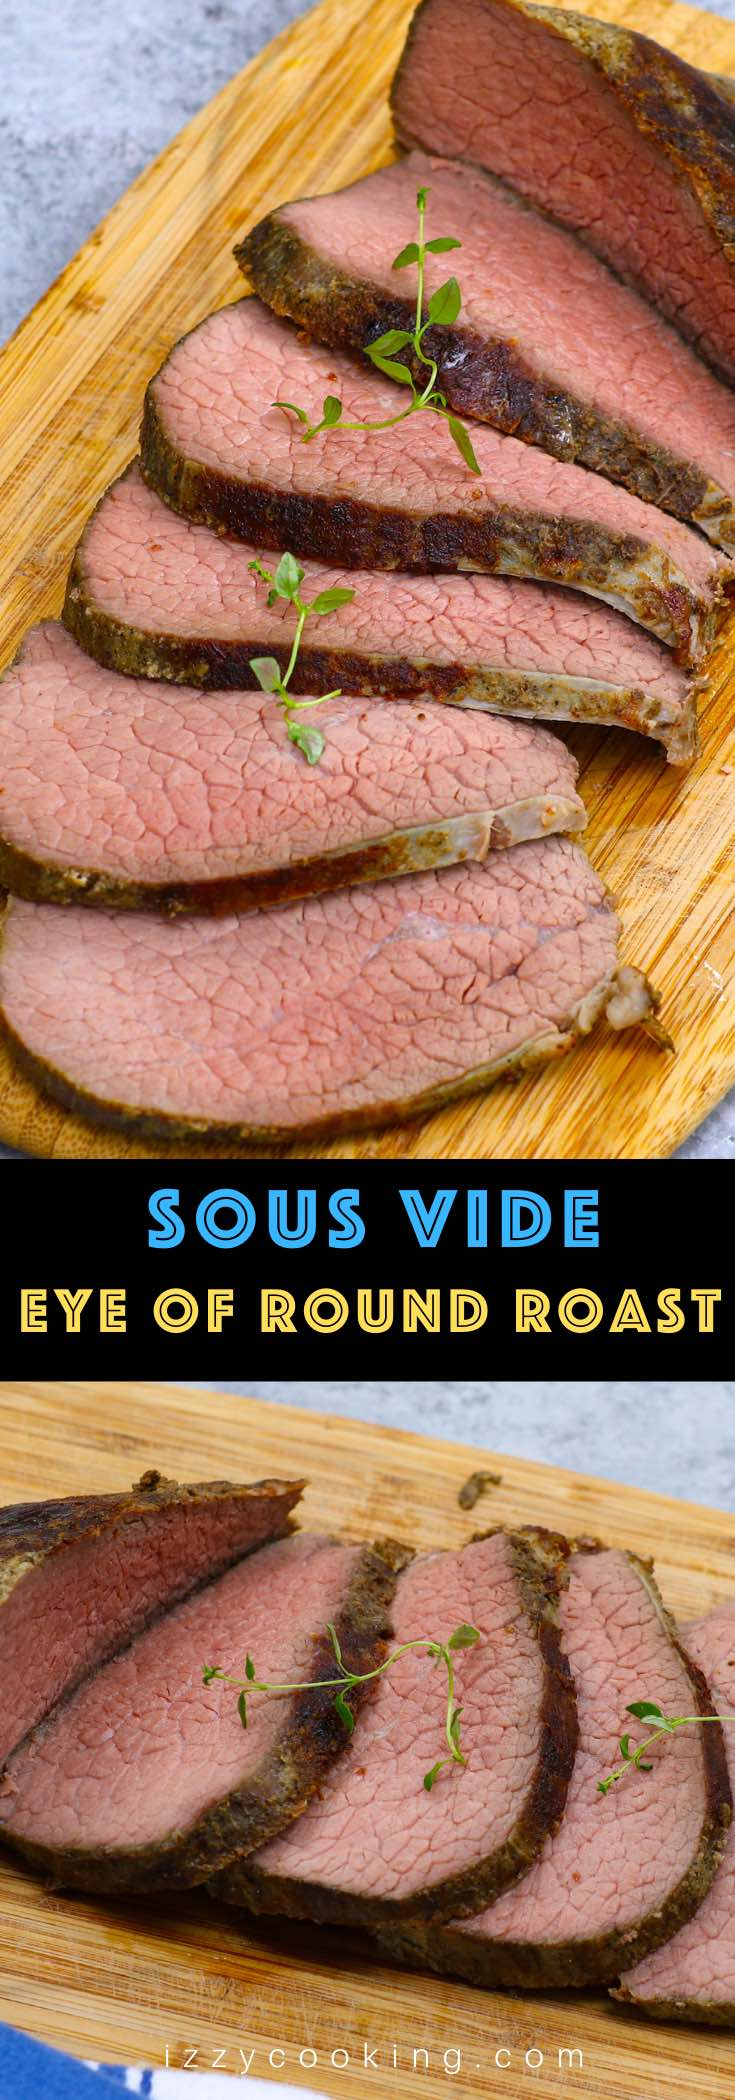 Sous Vide Eye of Round is the best way to cook this affordable beef cut, turning it into the most tender and juicy roast! This 16-hour low and slow sous vide method transforms the tough cut into a delicious eye of round roast that's perfectly moist from edge to edge. Great for a festive holiday meal on a budget!